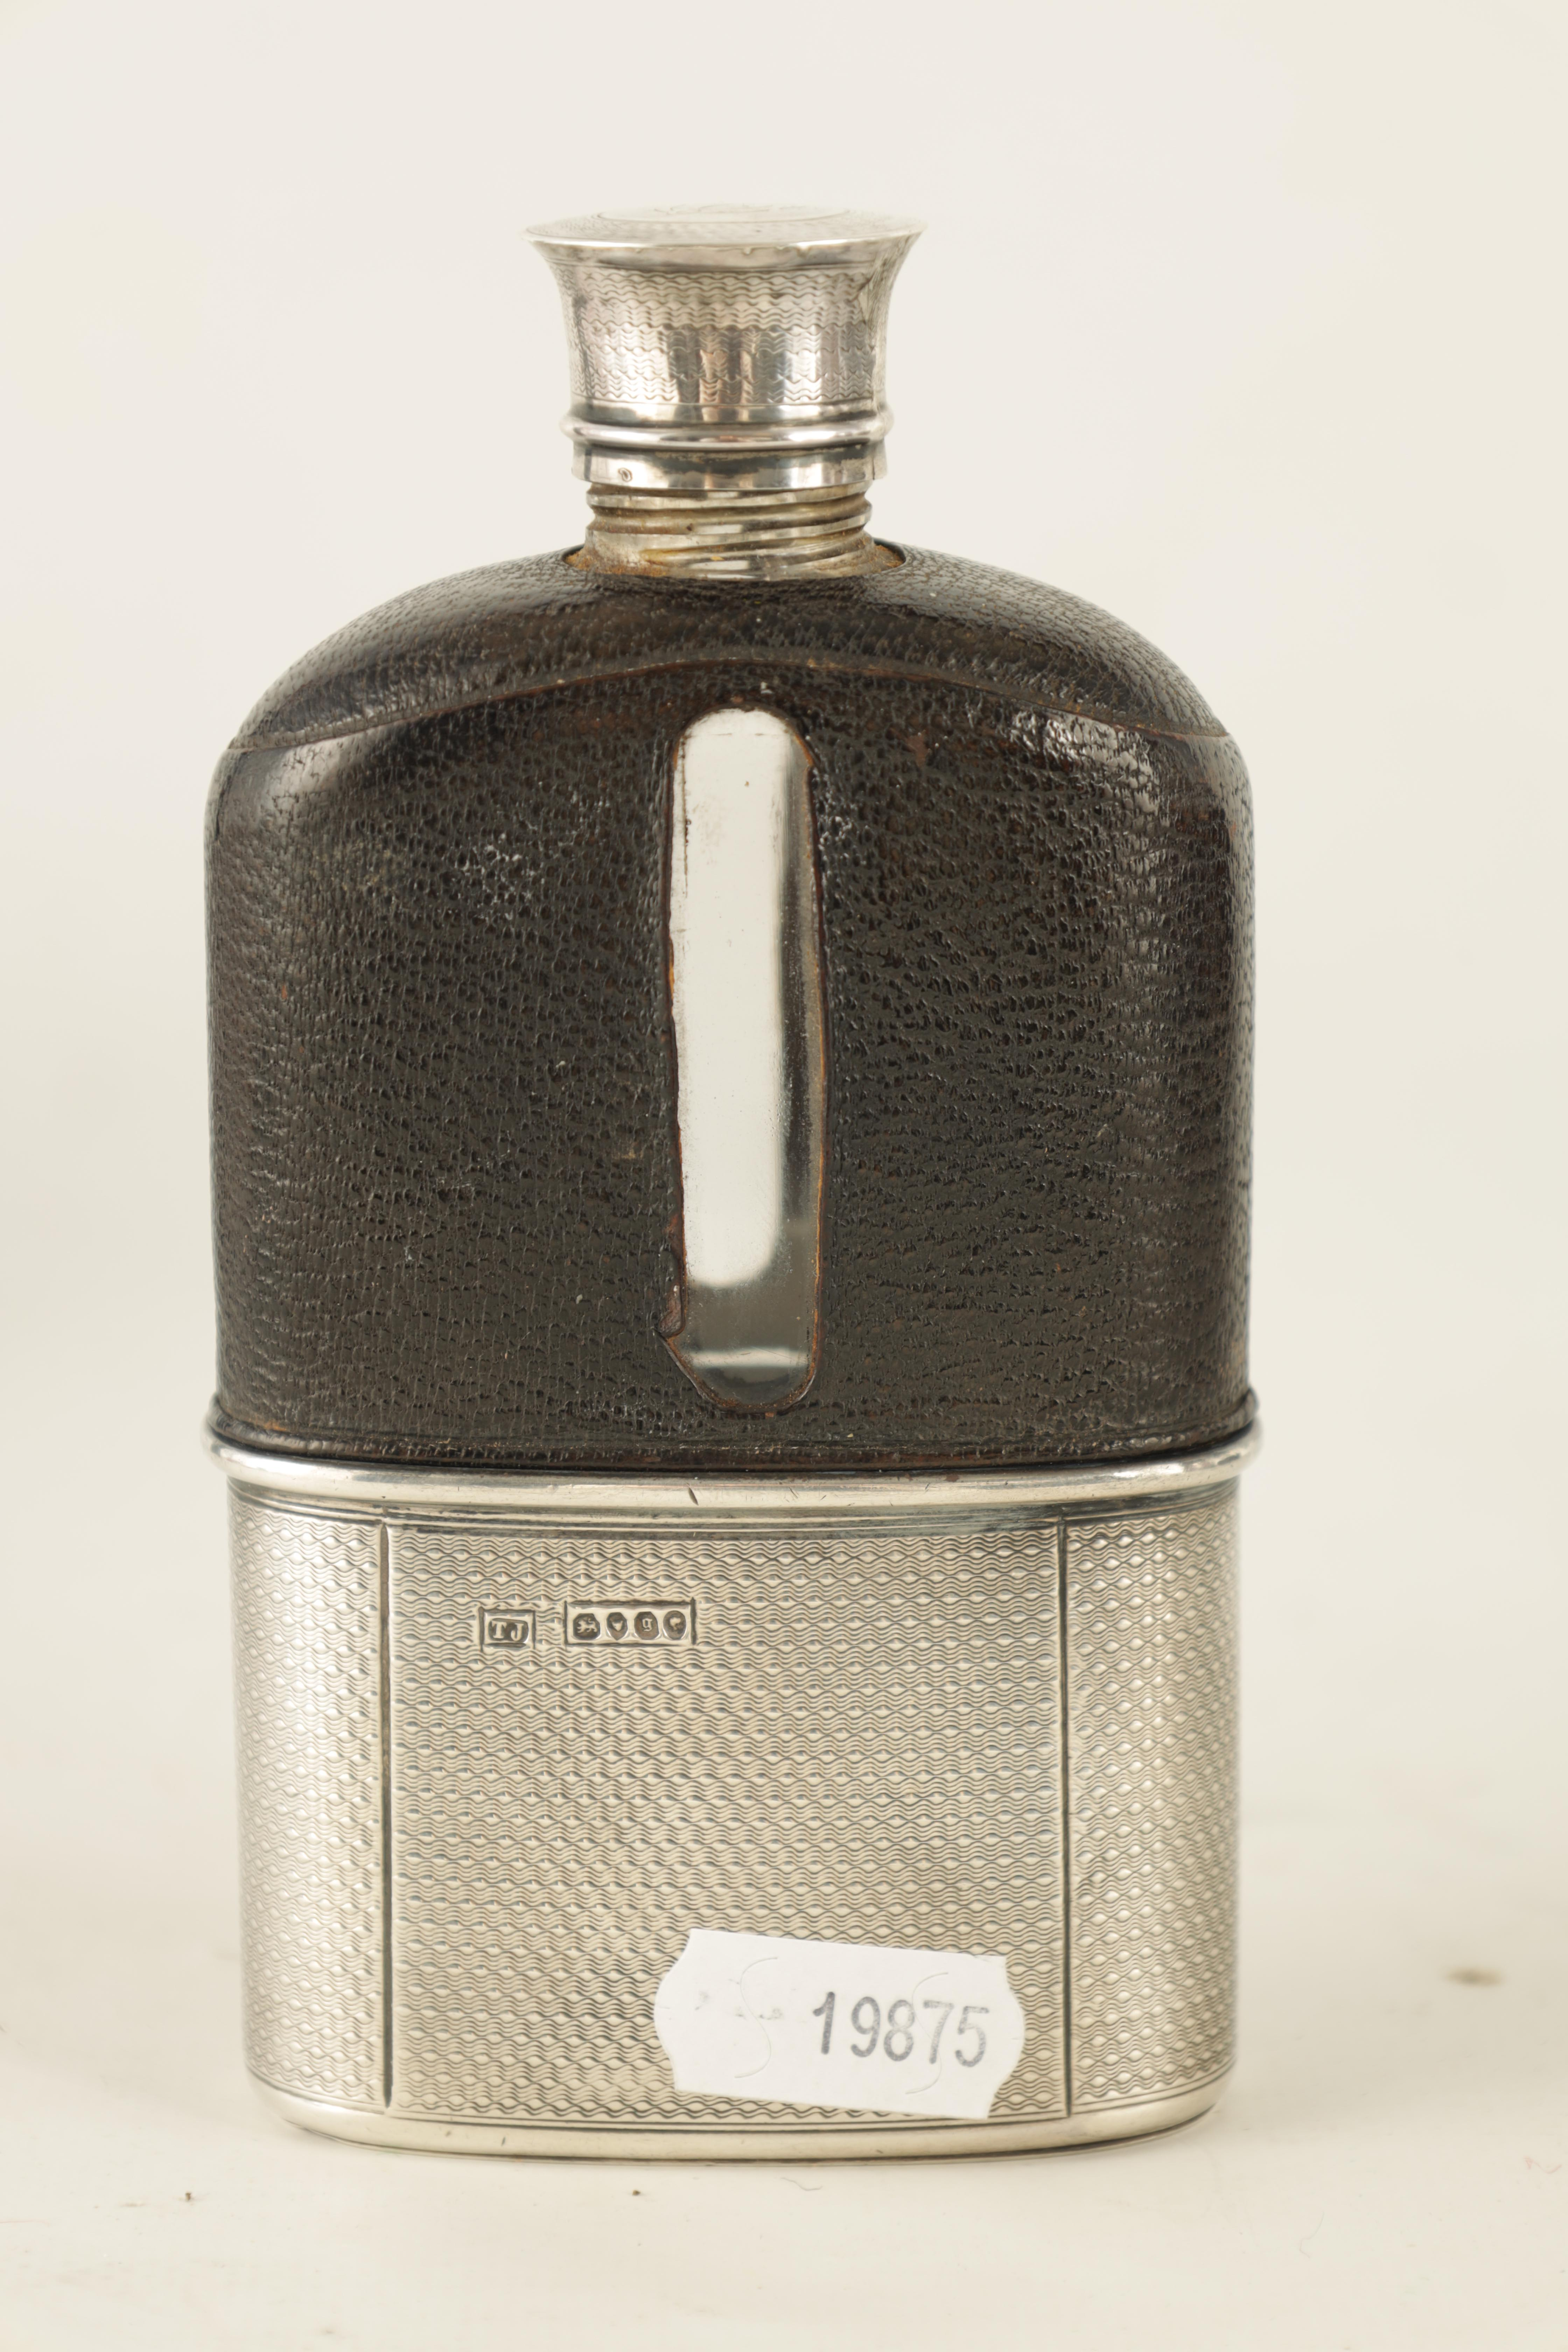 A VICTORIAN SILVER AND MOROCCAN LEATHER HIP FLASK RETAILED BY ASPREY 186 BOND STREET with engine- - Image 6 of 8